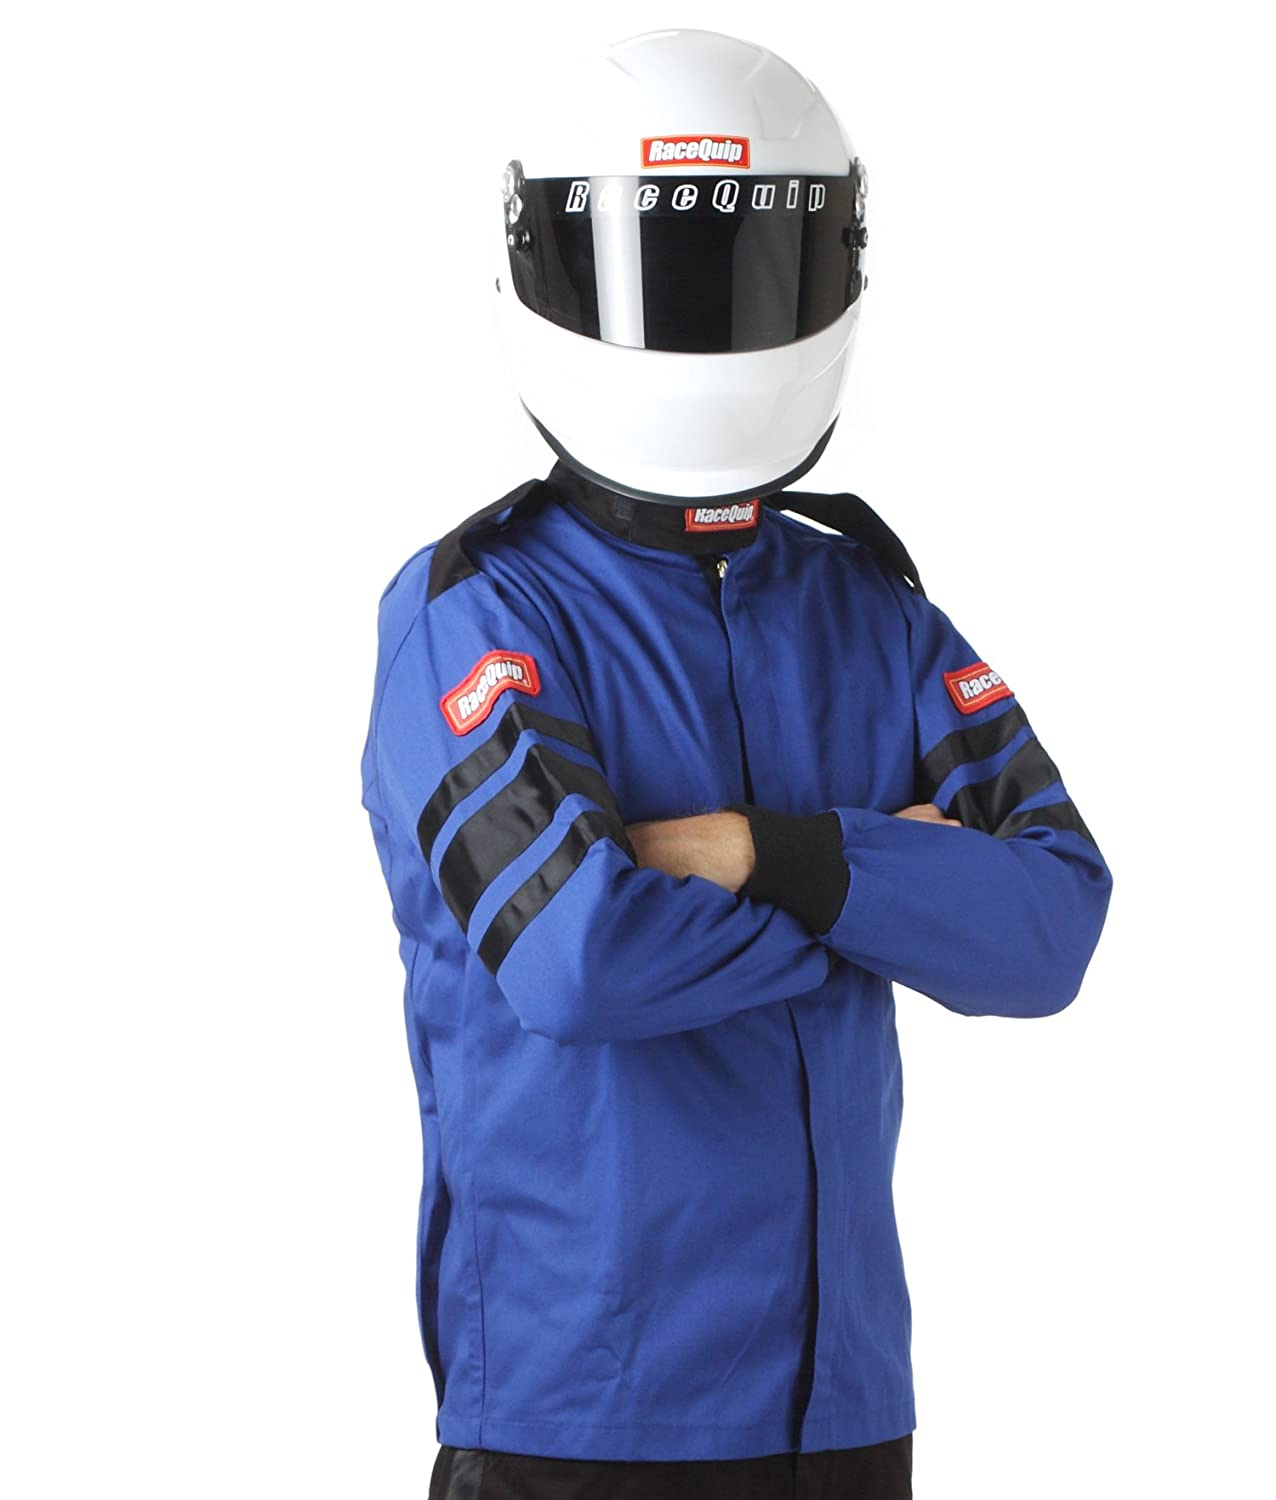 RaceQuip 111025 111 Series Large Blue SFI 3.2A/1 Single Layer Driving Jacket